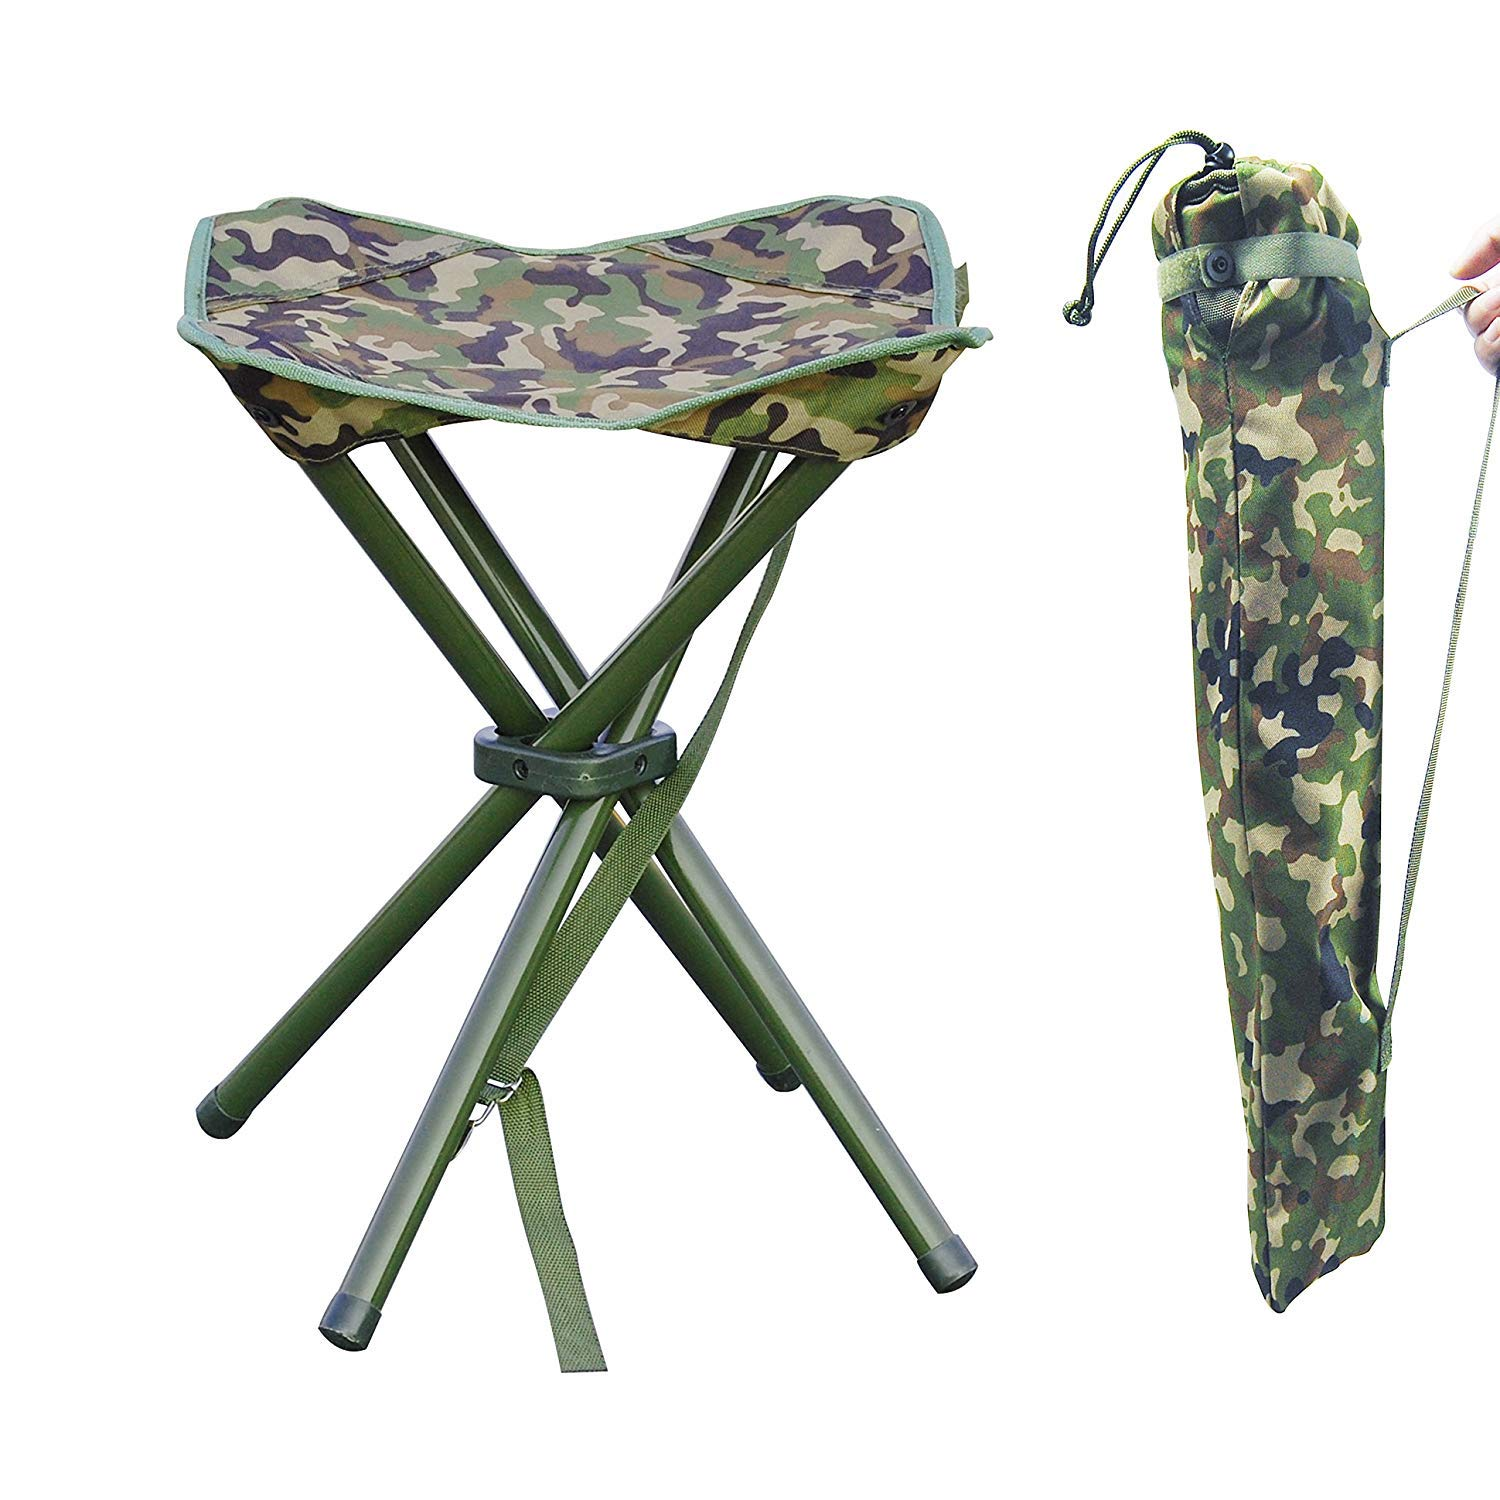 AGOOL Portable Folding Stool Outdoor Square Slack Chair Lightweight Heavy Duty for Camping Mountaineering Hiking Travel House-Using Recreation by AGOOL